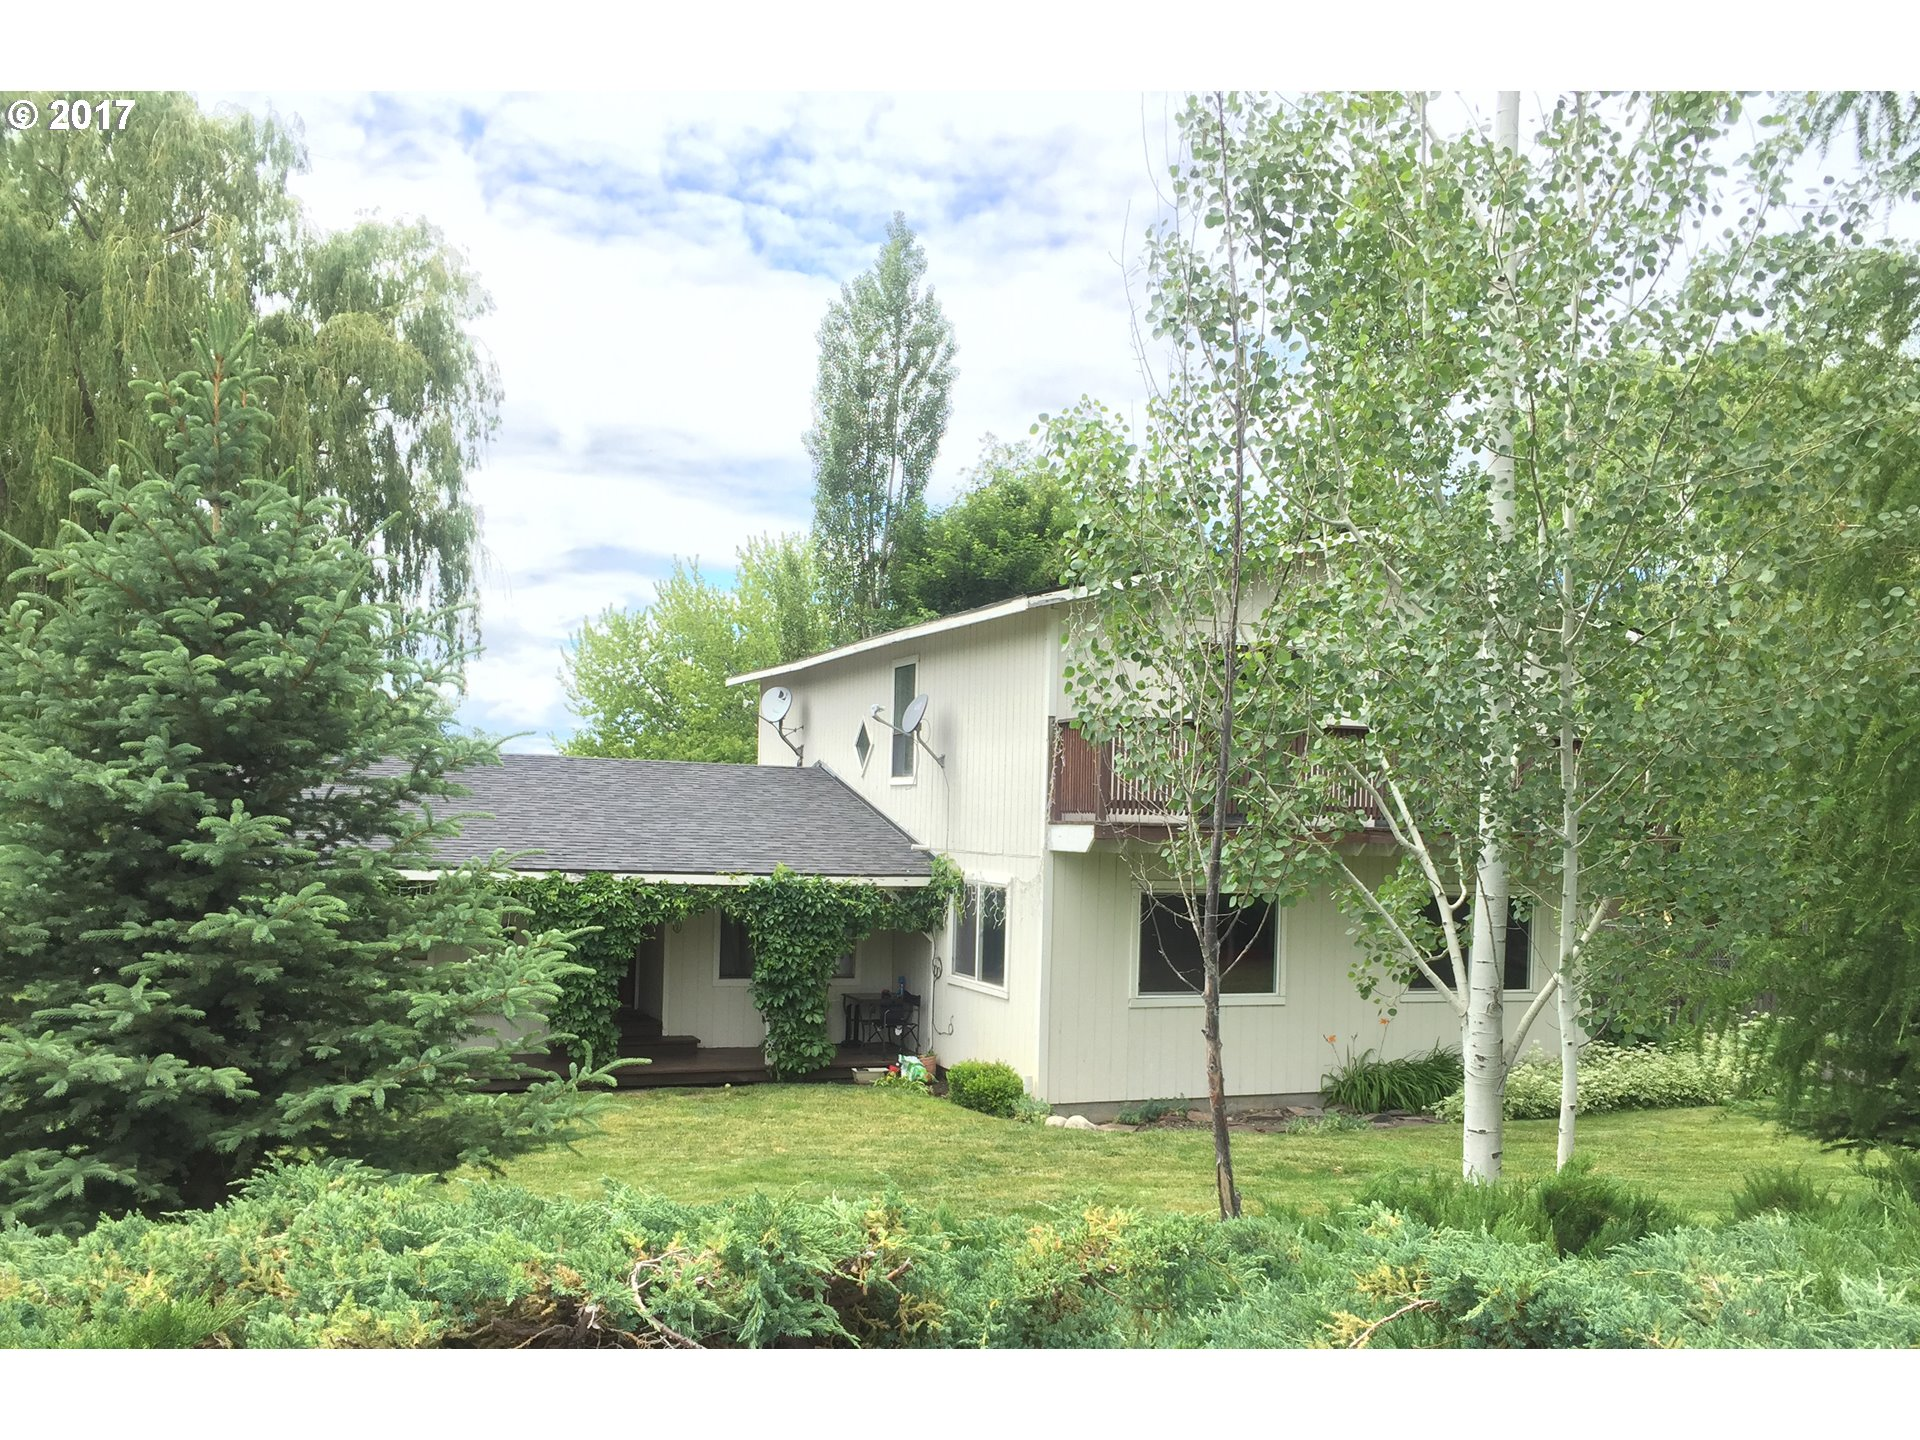 1404 JASPER ST Cove, OR 97824 - MLS #: 17594768